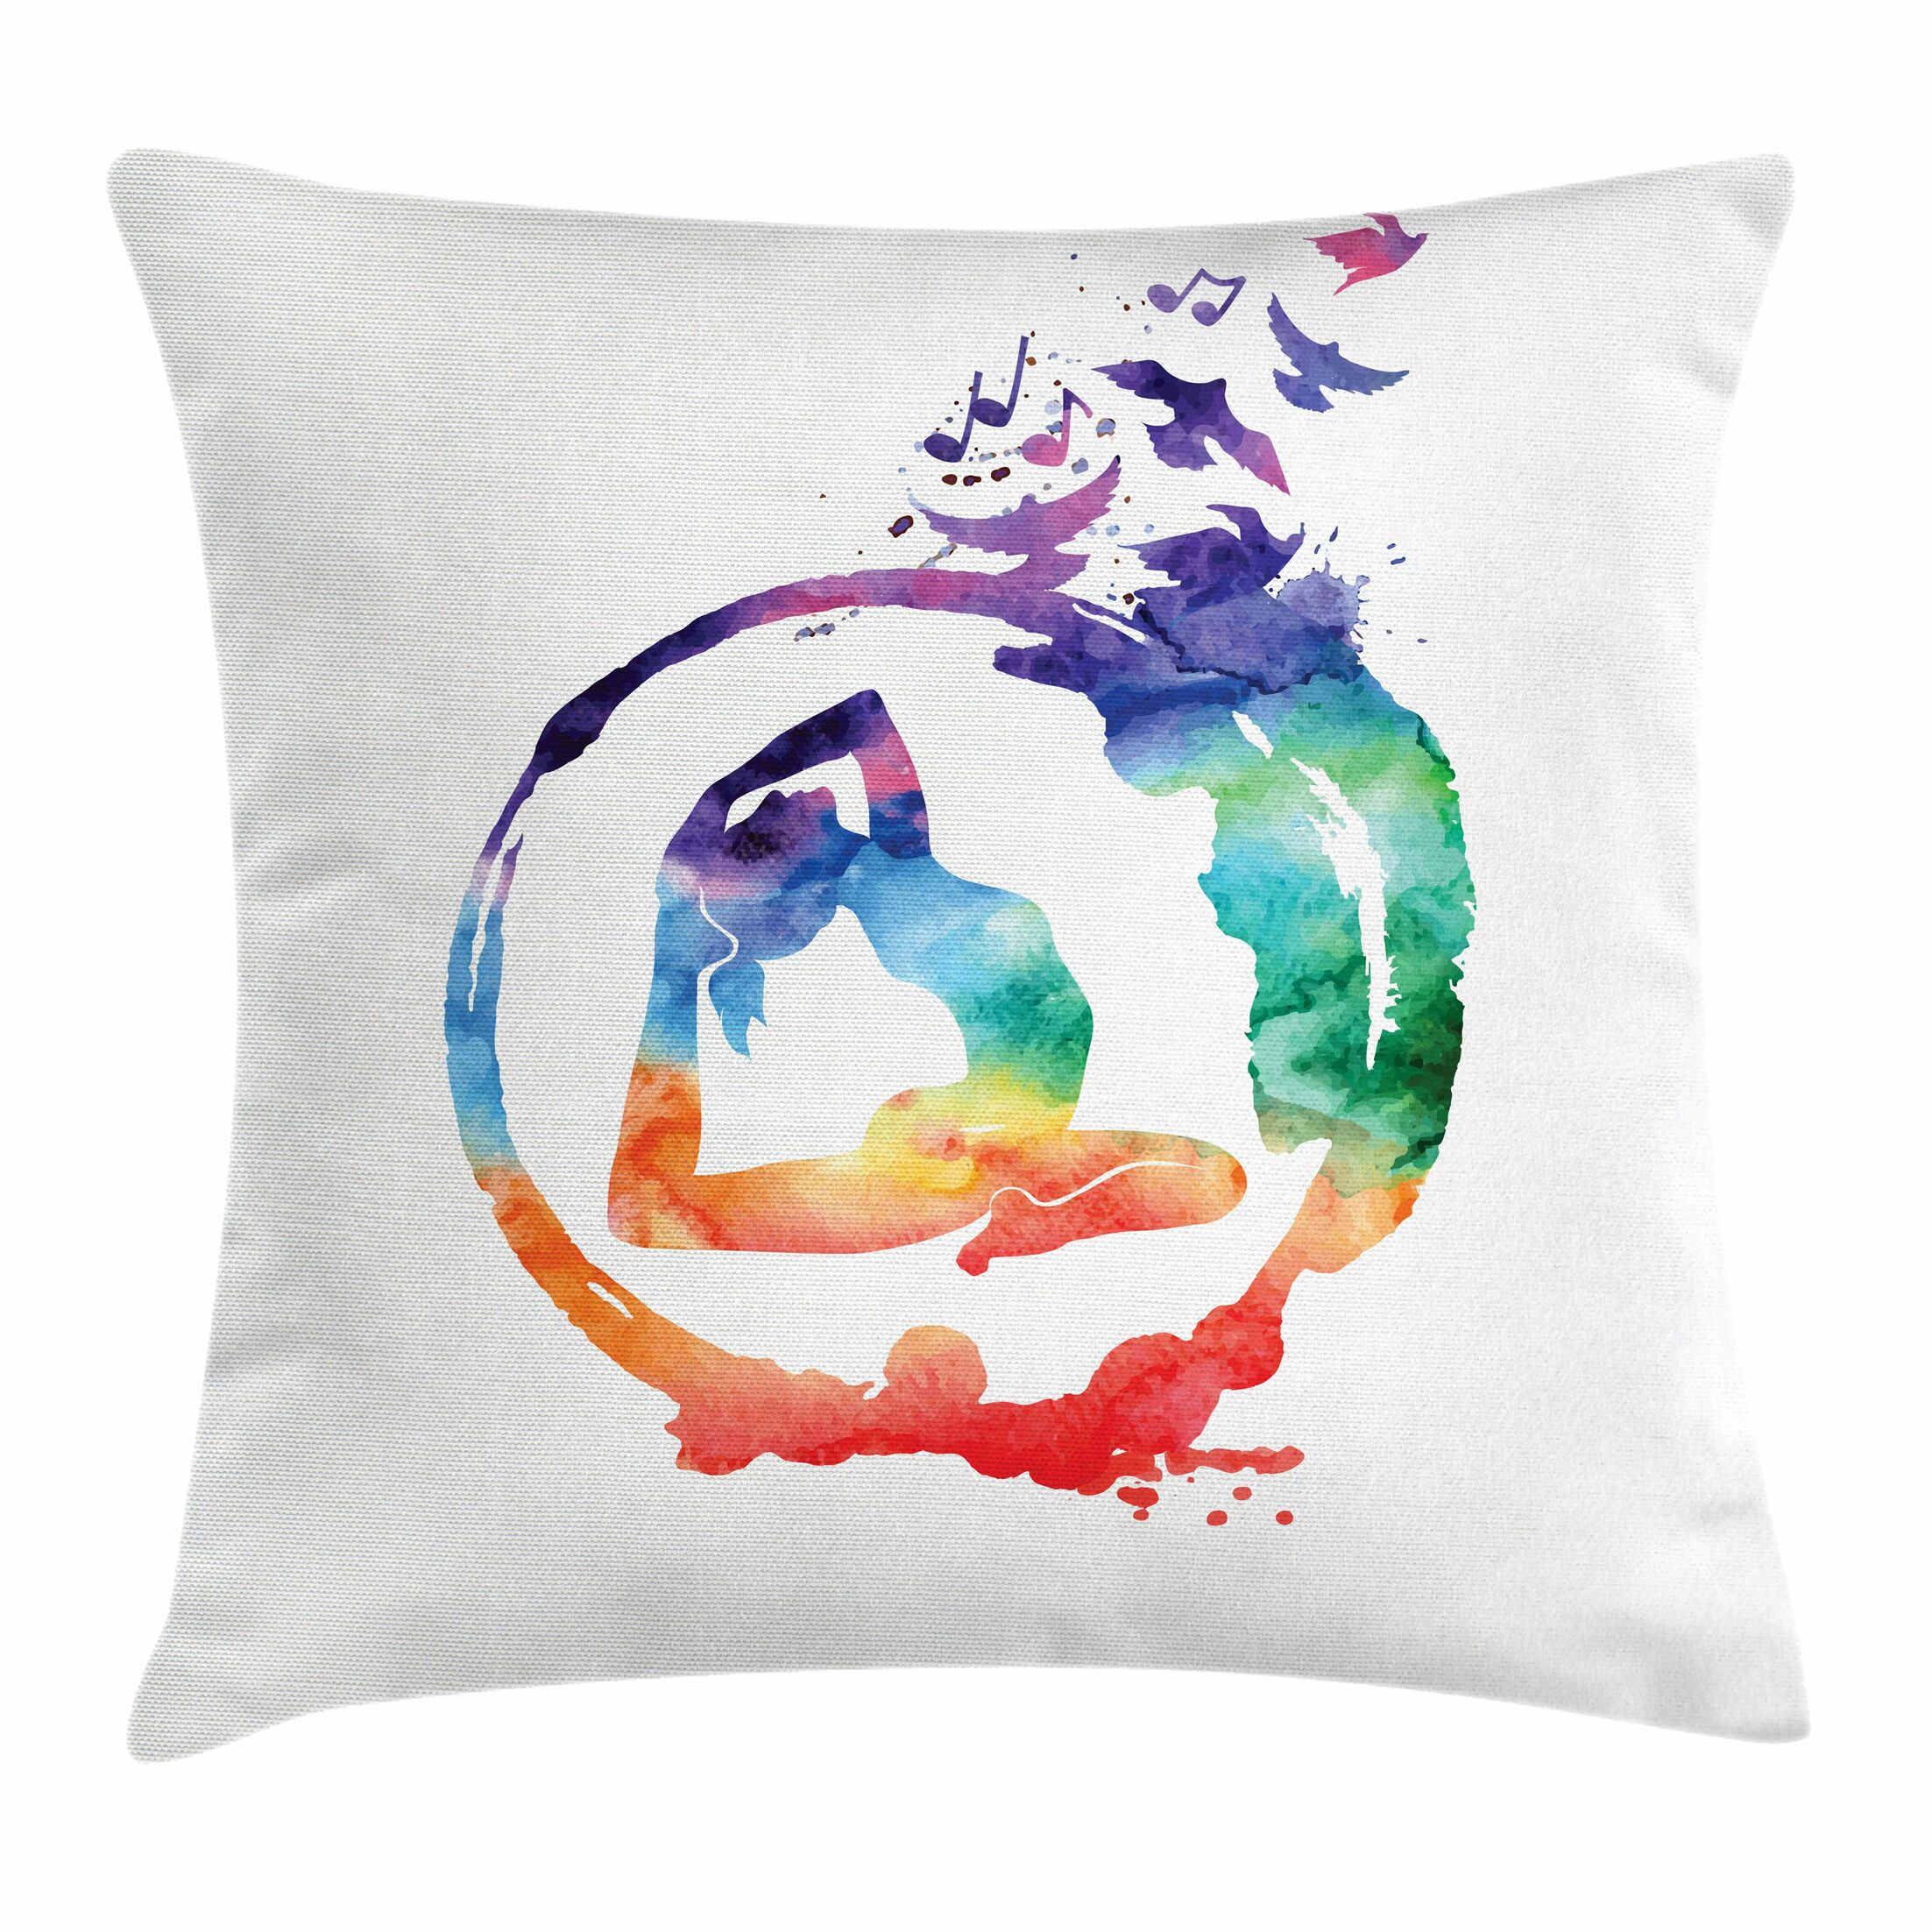 Yoga Watercolors Birds Music Square Pillow Cover Size: 16